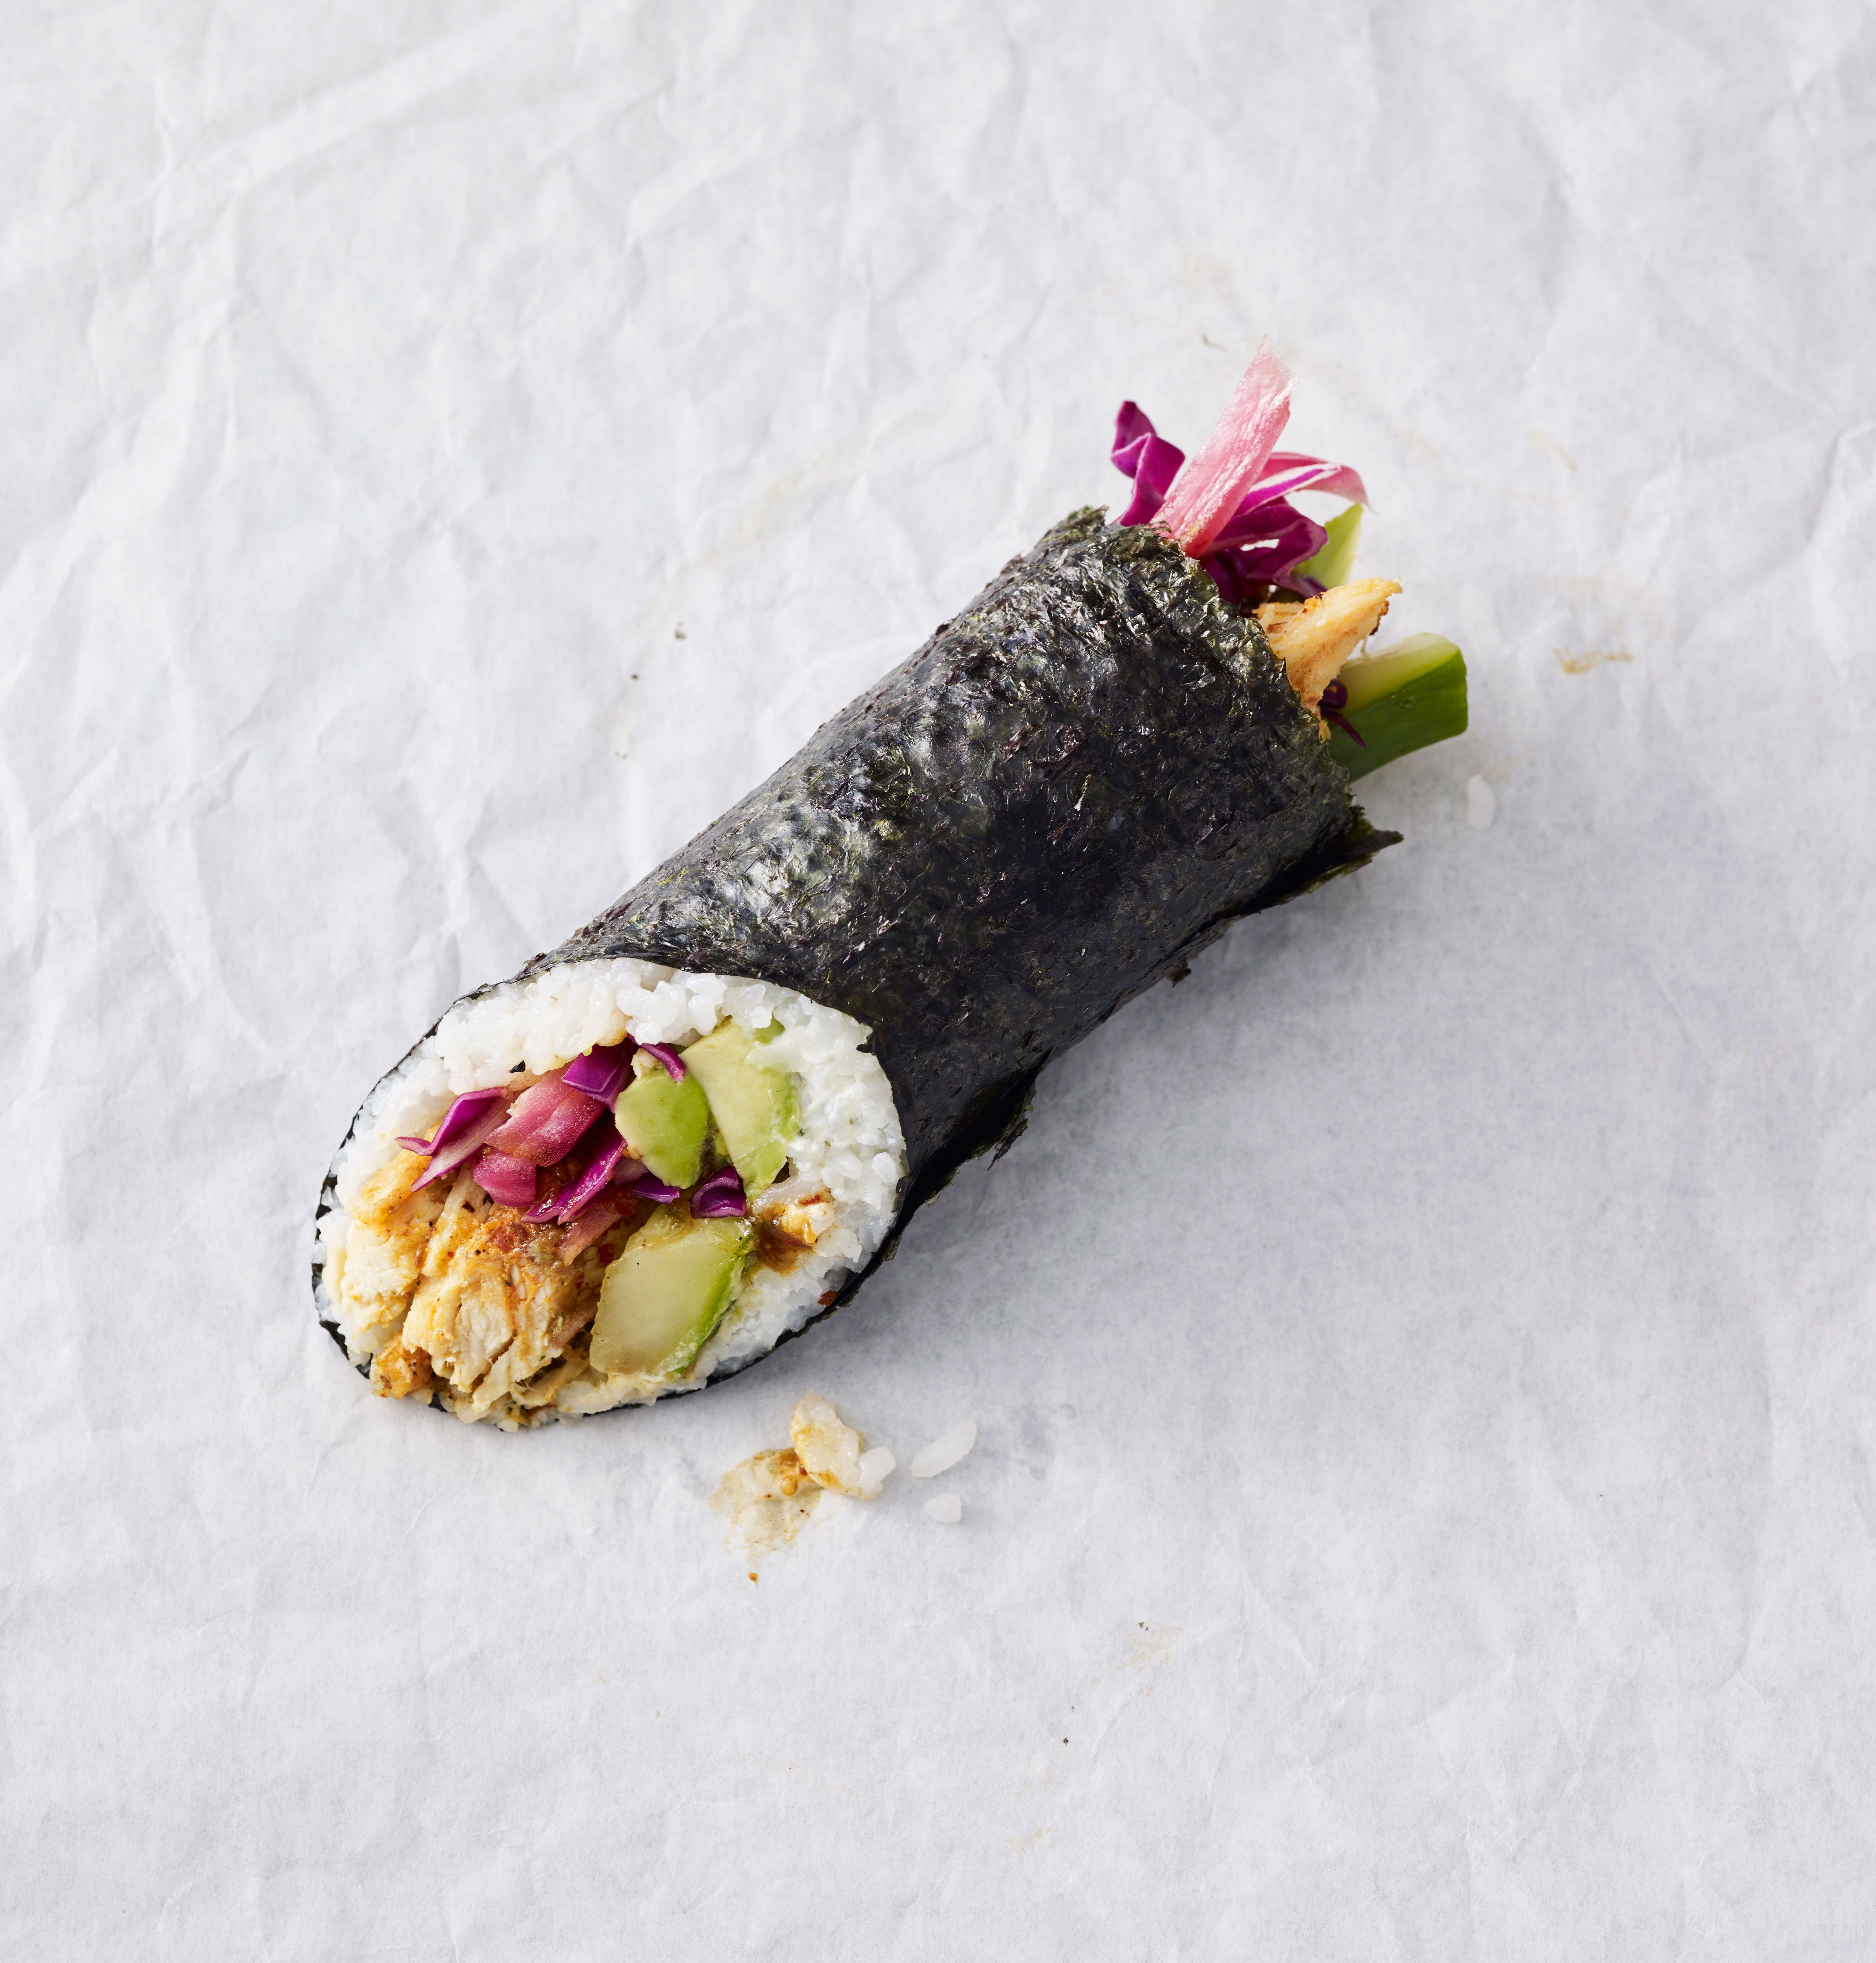 Starbucks Selling Sushi Burritos in Chicago - Starbucks Chicken Maki ...